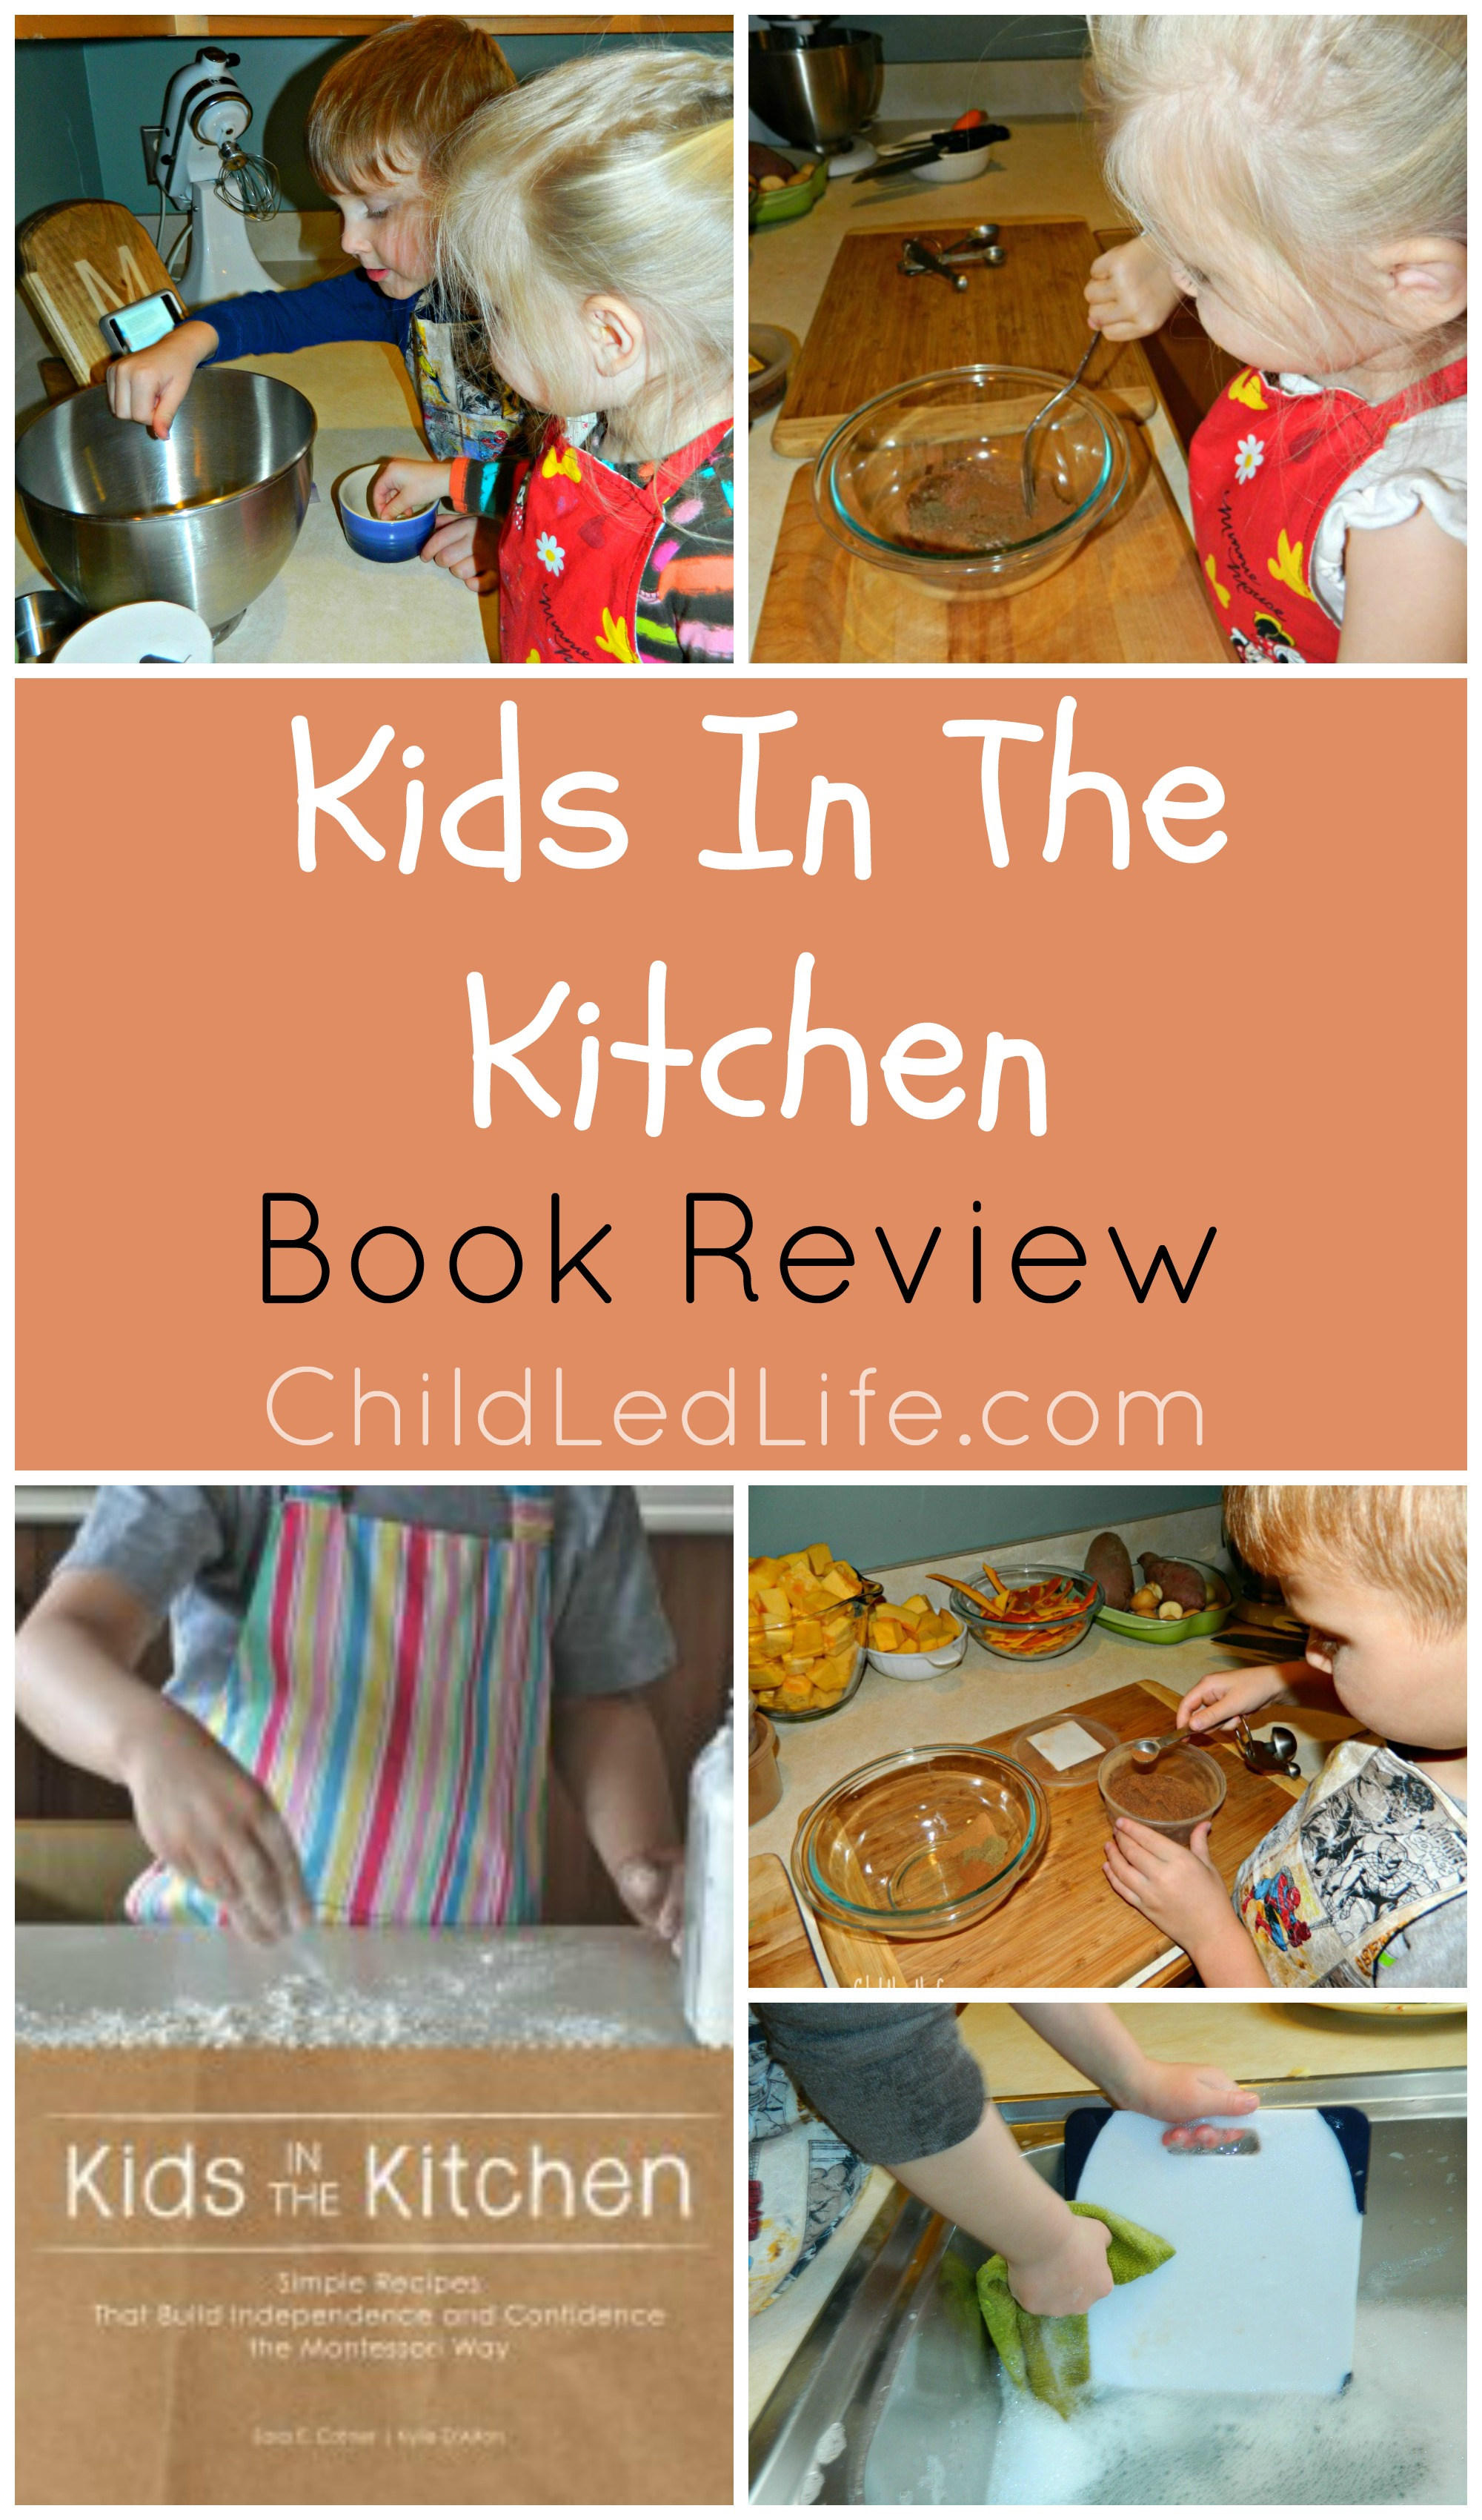 Kids In The Kitchen Book Review and Party In The Kids Kitchen Link Up